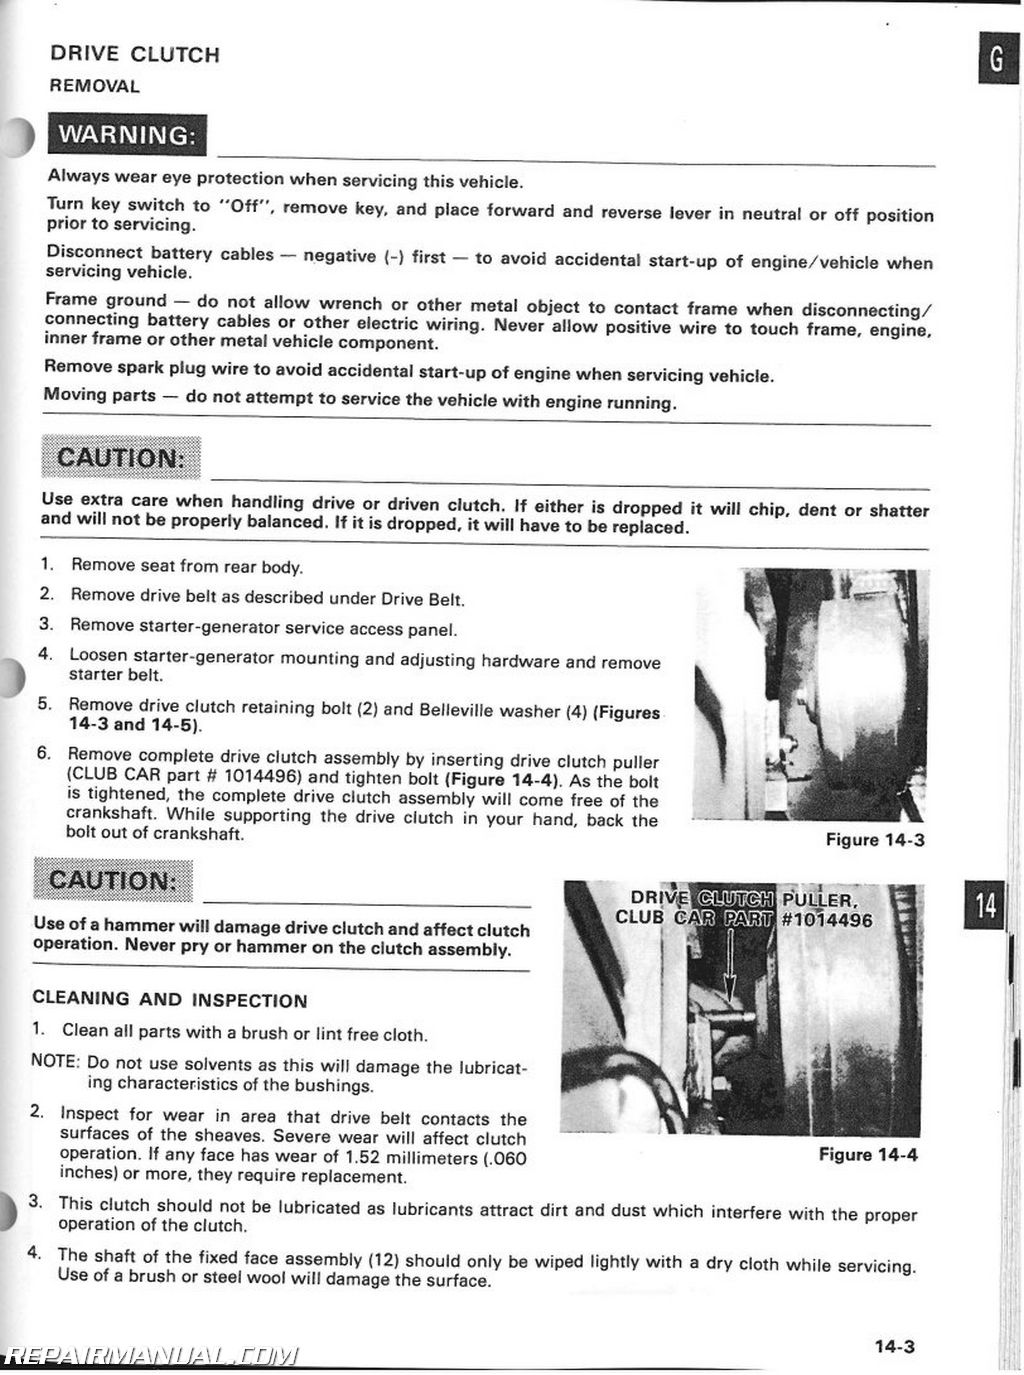 1994 Club Car Ds Golf Maintenance And Service Manual Pics Photos Need Wiring Diagram 1993